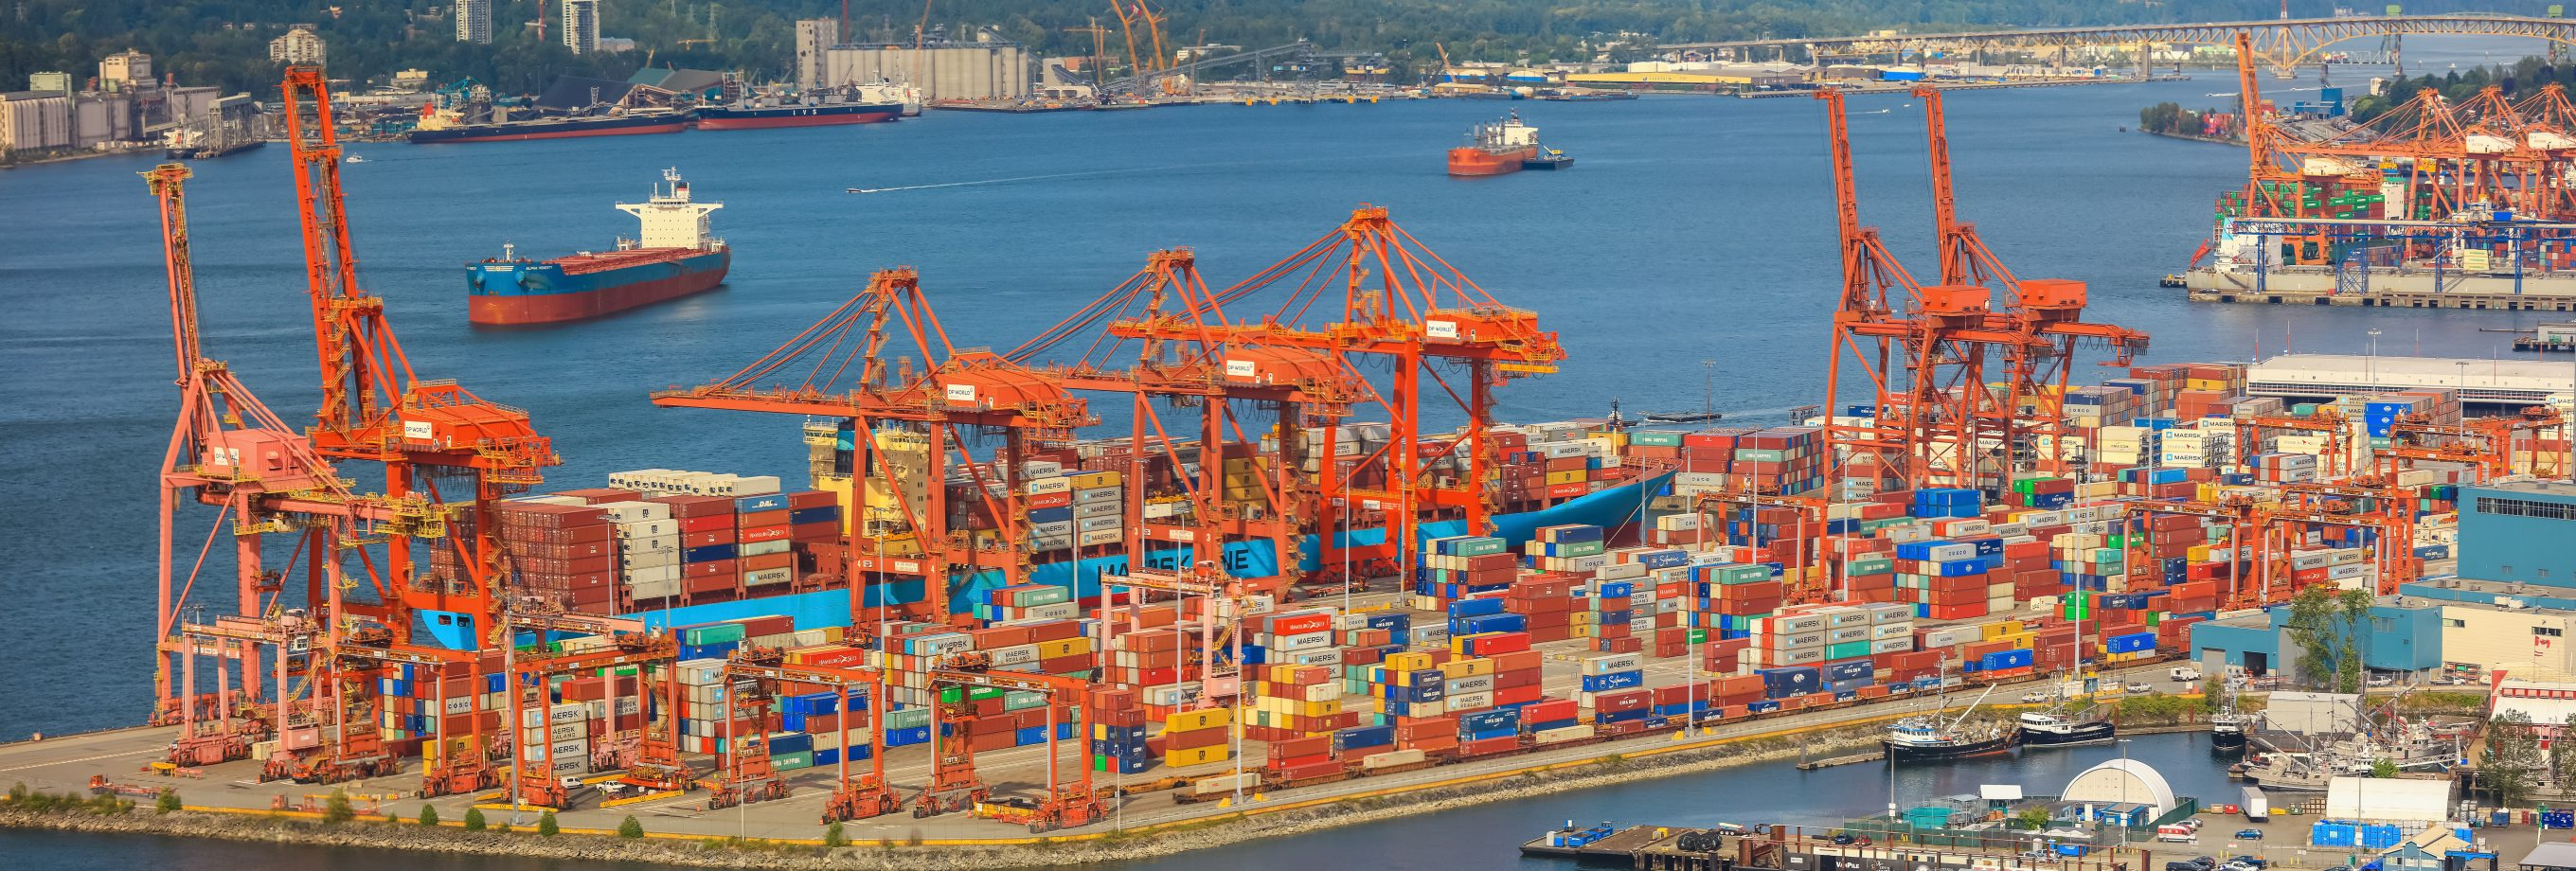 Vancouver's Supply Chain, Logistics & Operations Recruiters- Vancouver Port Imagery